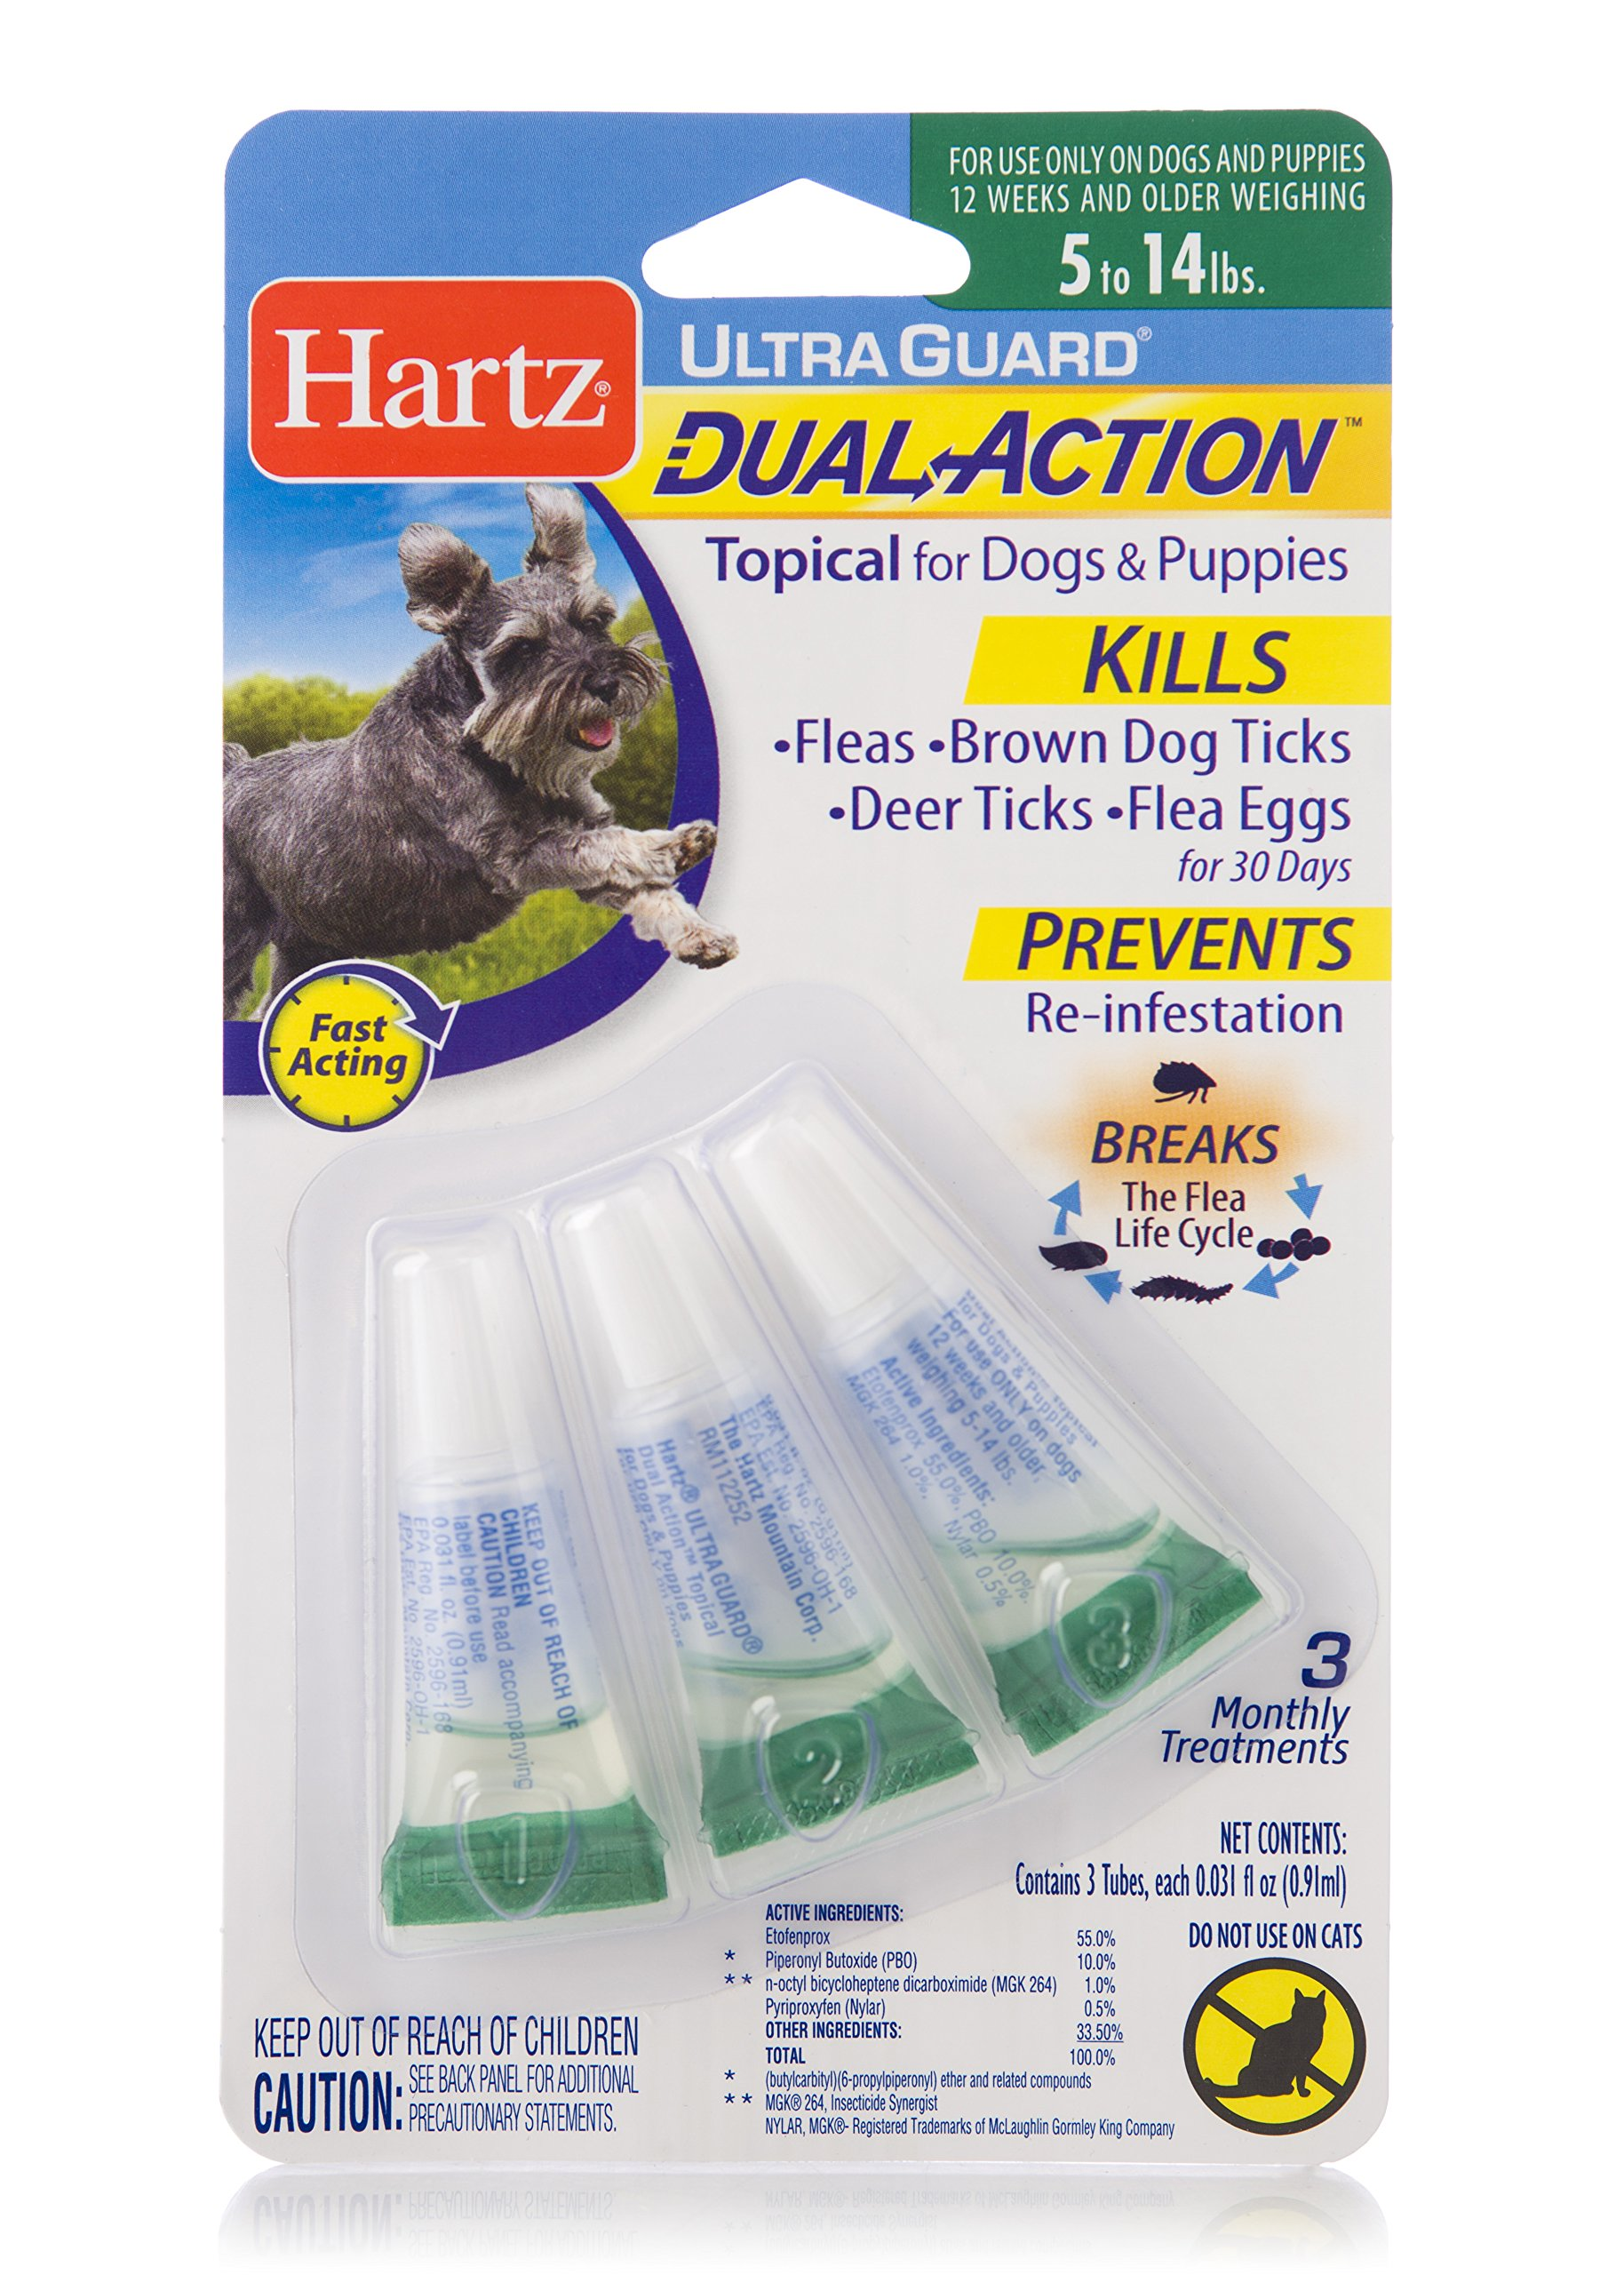 HARTZ Ultra Guard Dual Action Drops for Dogs & Puppies, 5-14 lbs